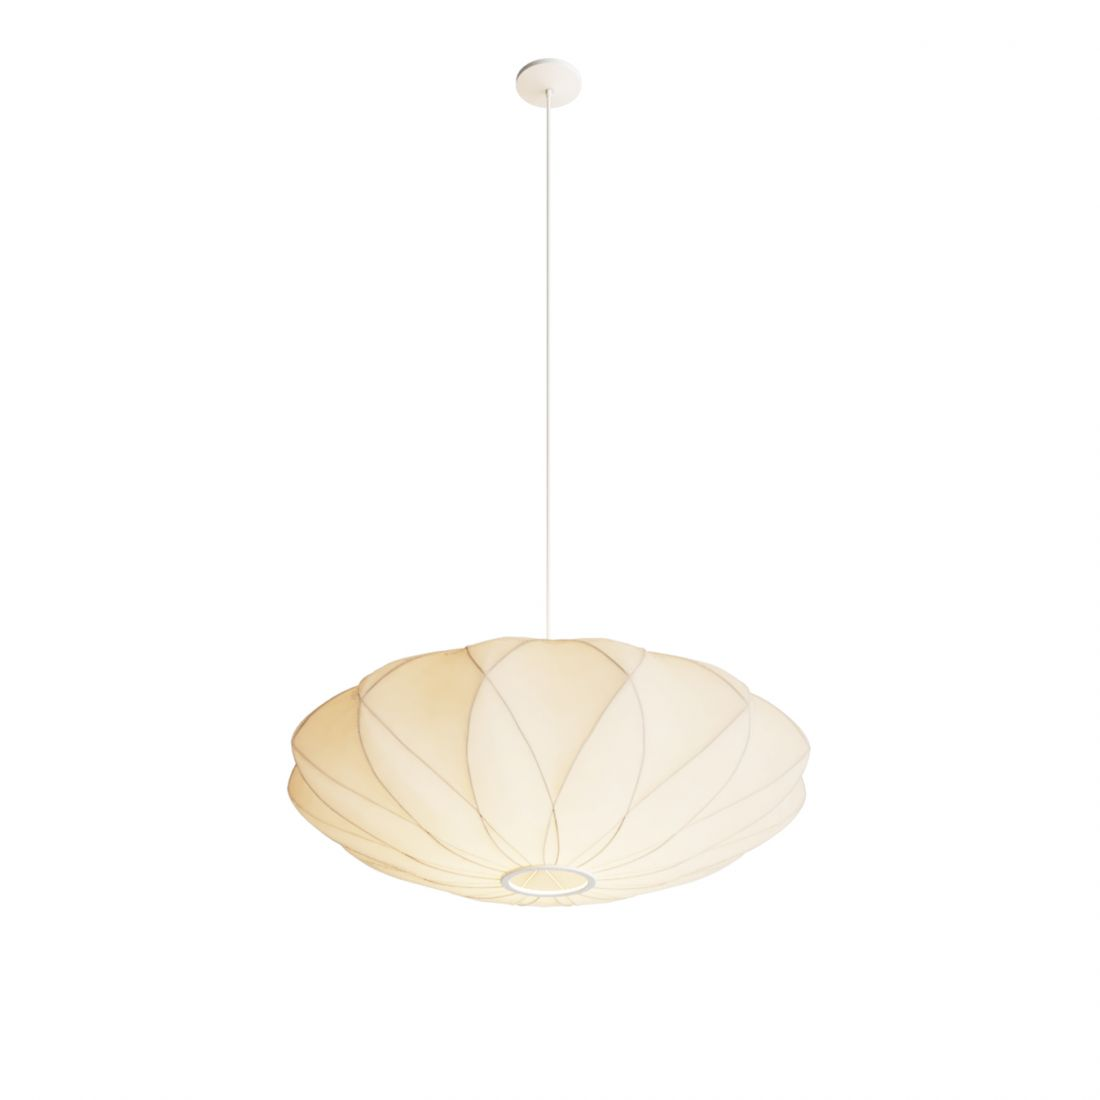 George Nelson Bubble Pendant Lamps 3d Model For Vray Corona